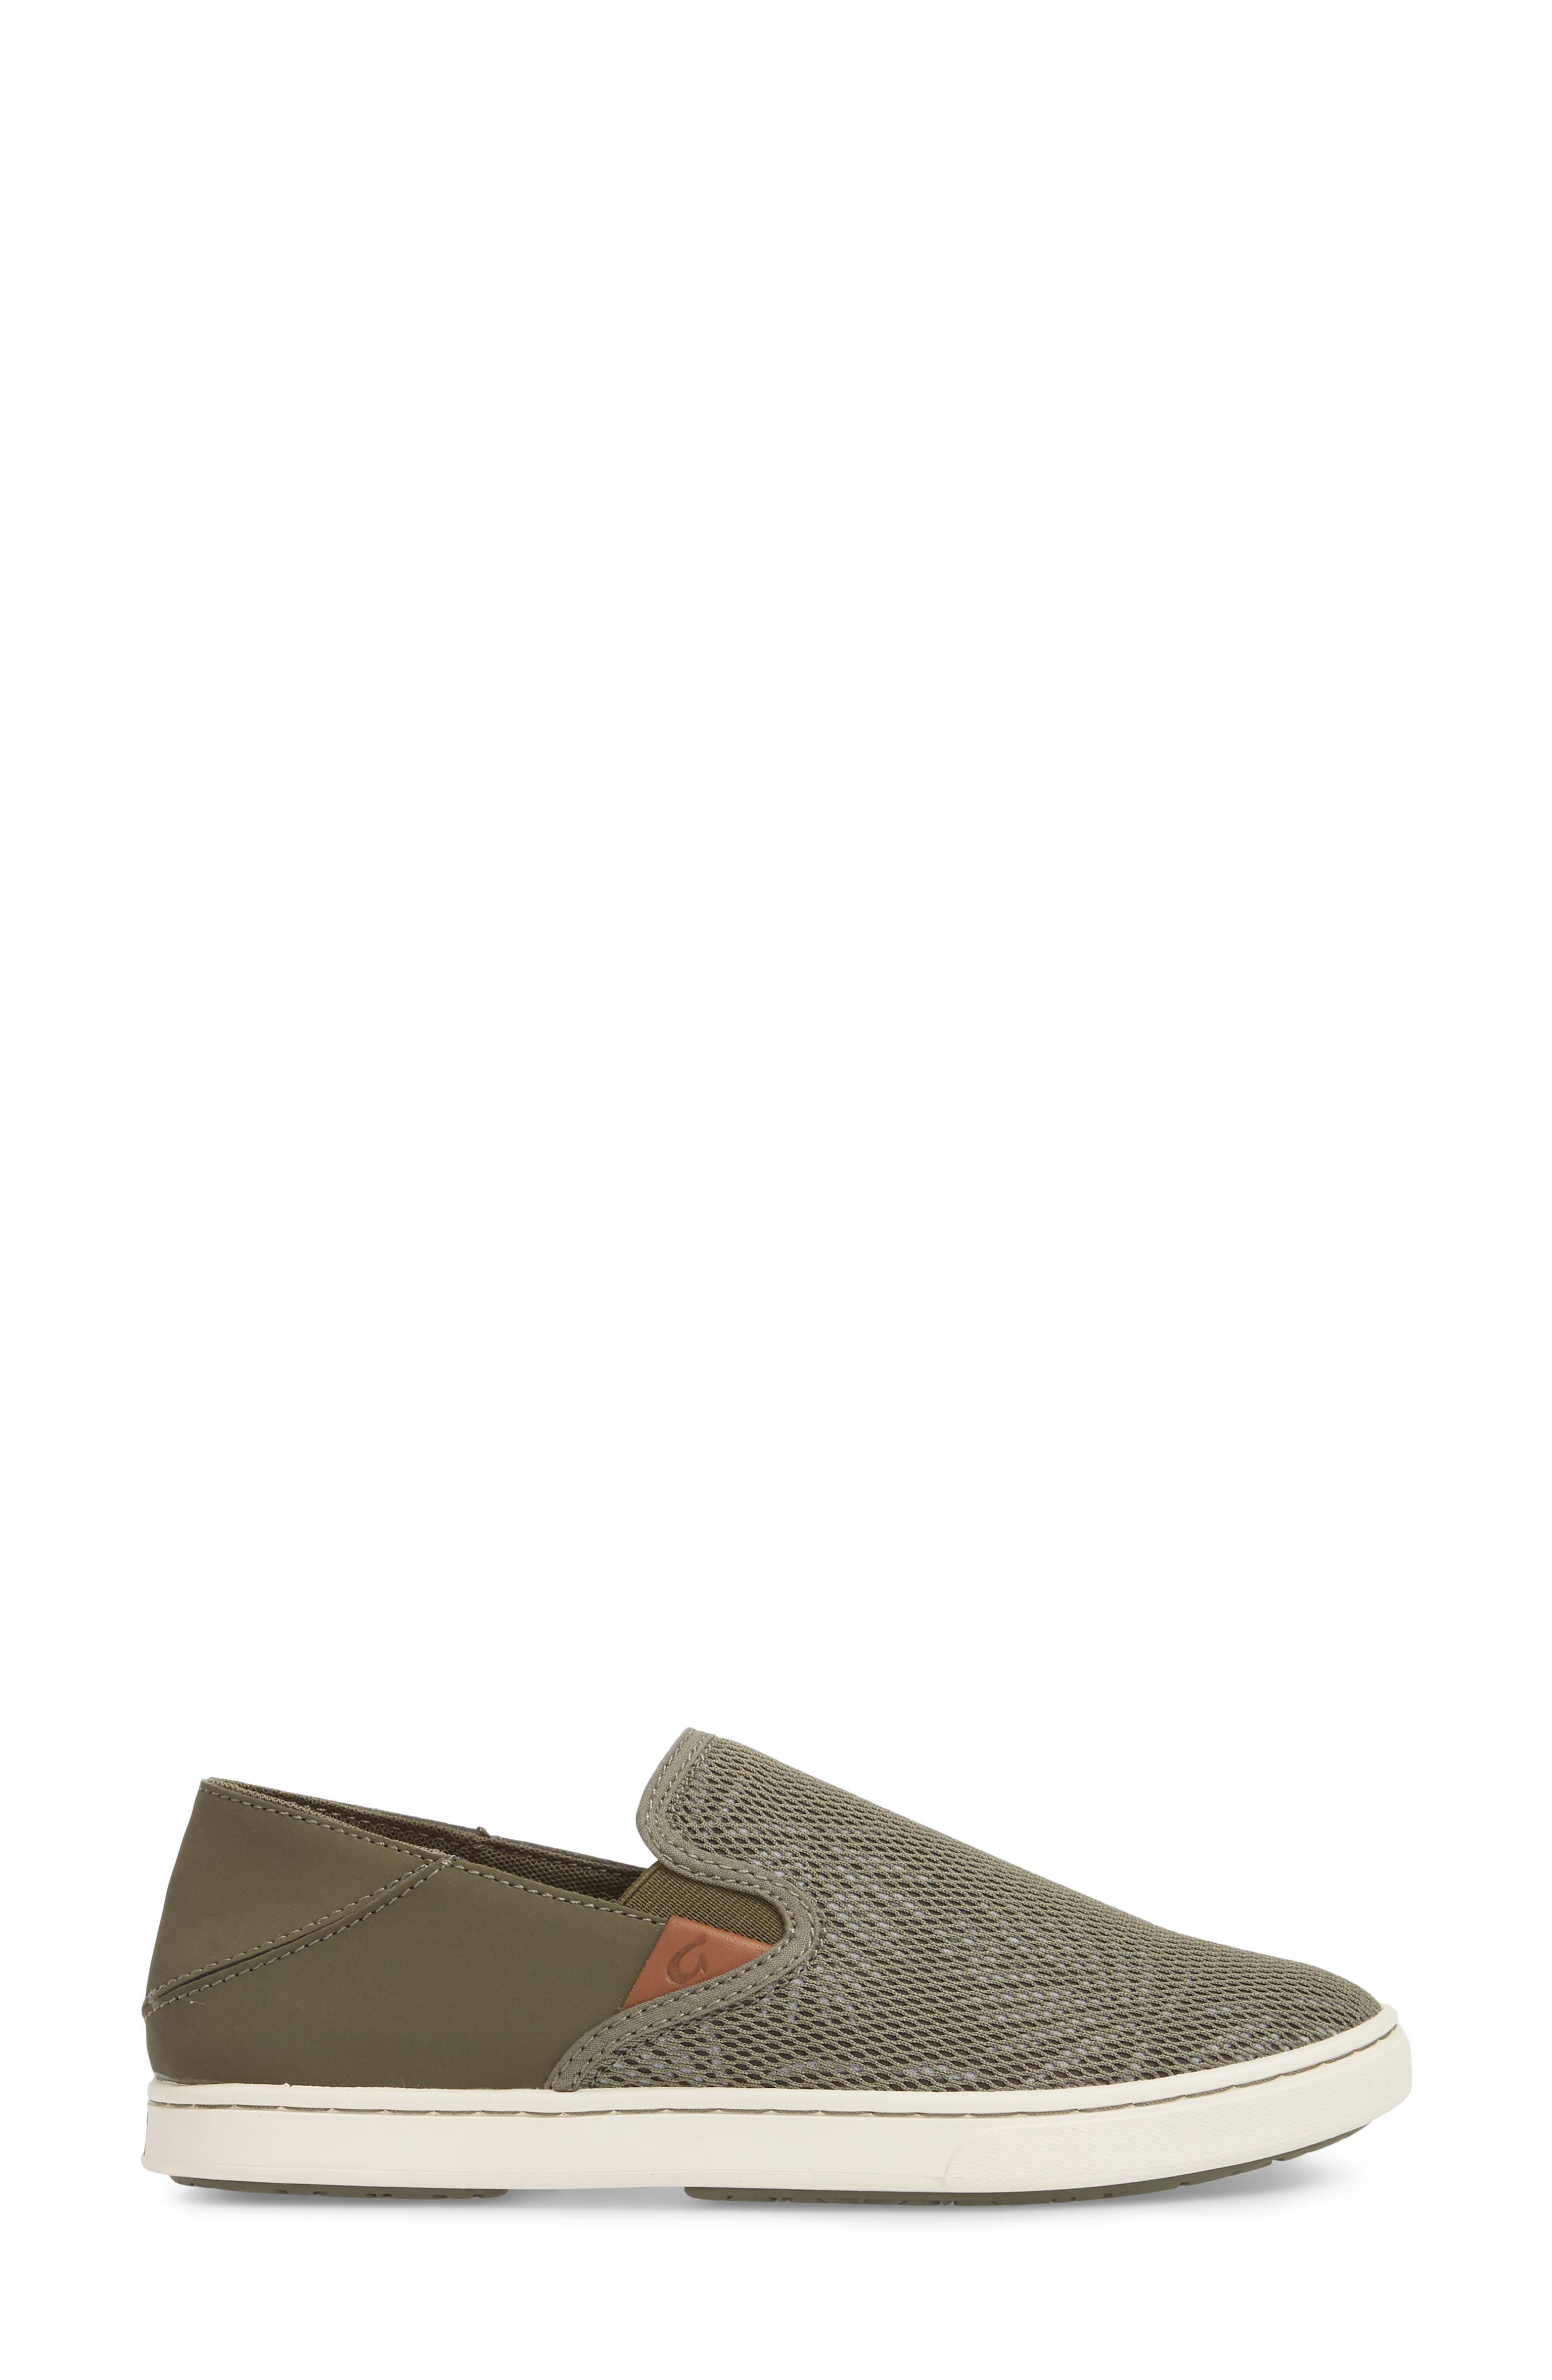 'Pehuea' Slip-On Sneaker,                             Alternate thumbnail 3, color,                             Dusty Olive/ Palm Fabric